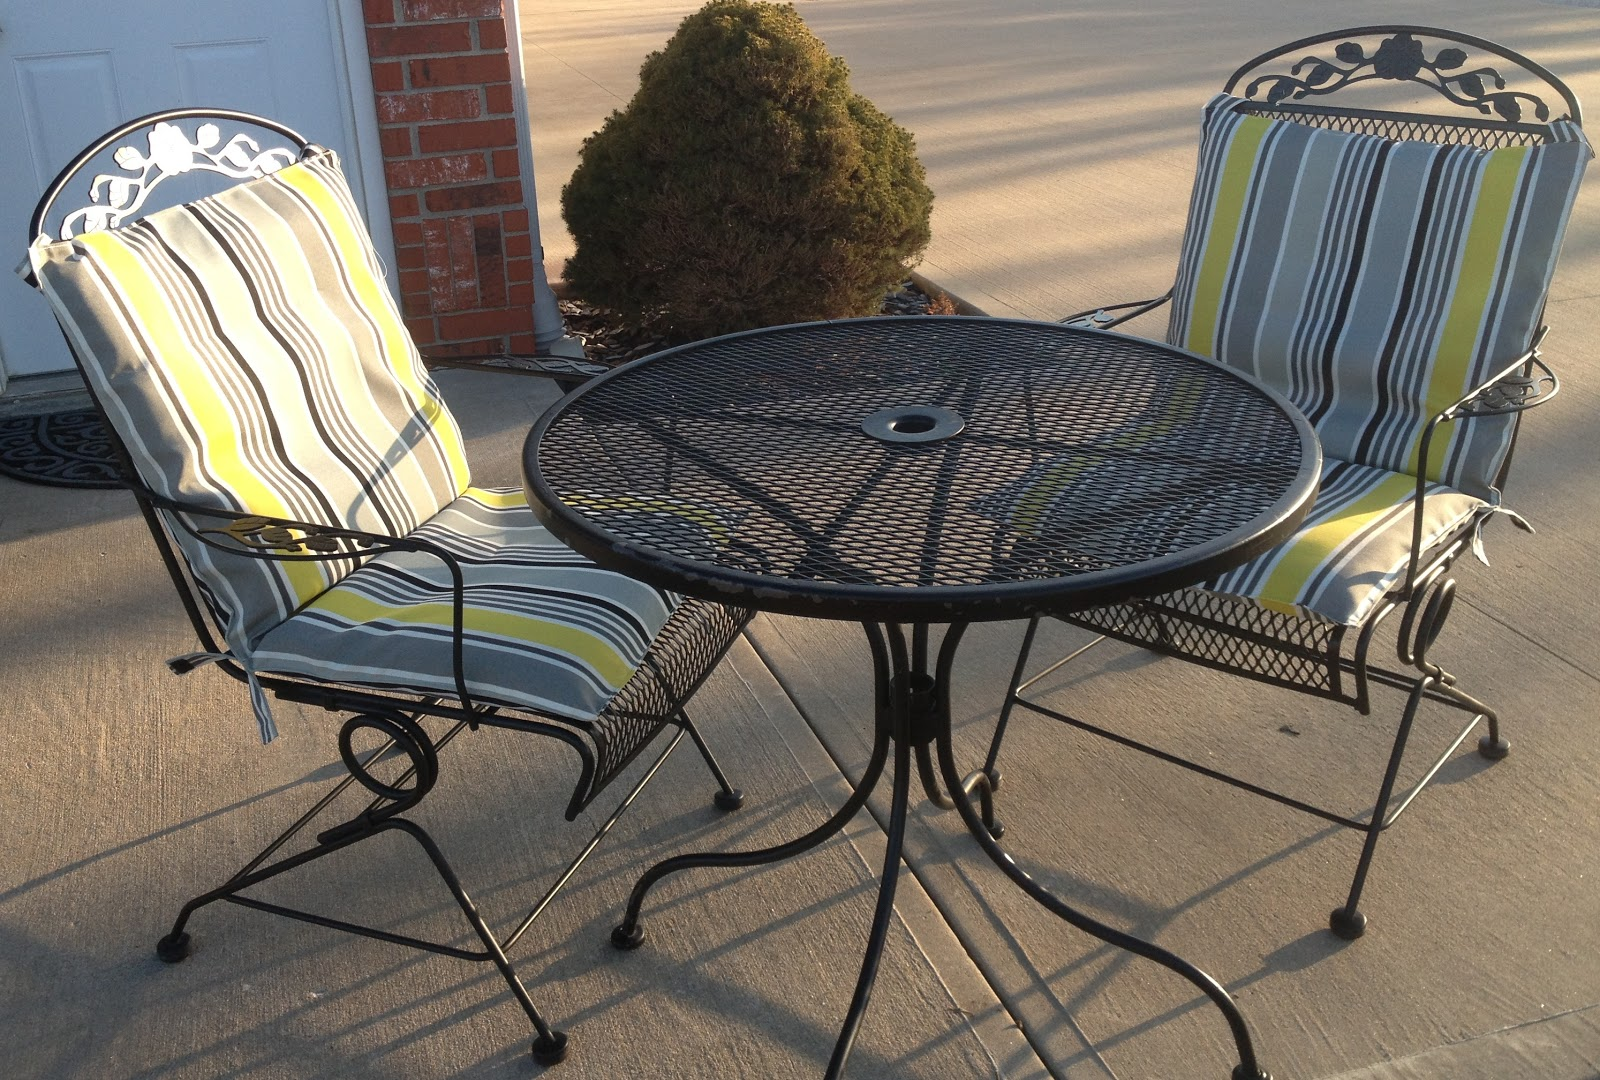 Recovering Lawn Chairs Toddler Table Chair Set Carols Distinctive Creations Spring Spruce Up Recover